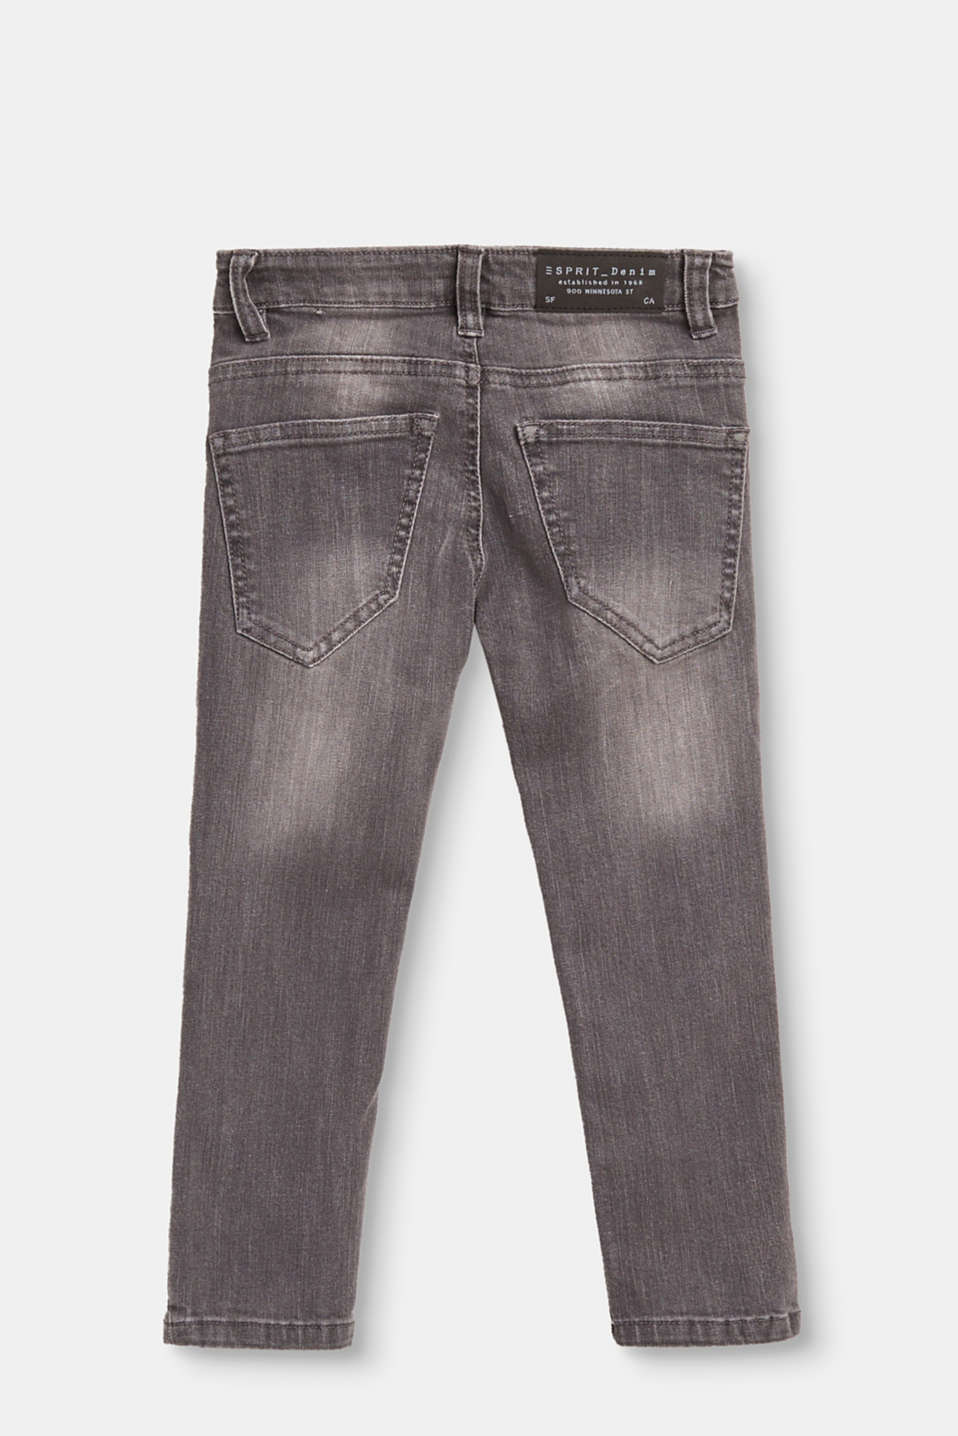 Mega stretchy jeans in a light vintage wash